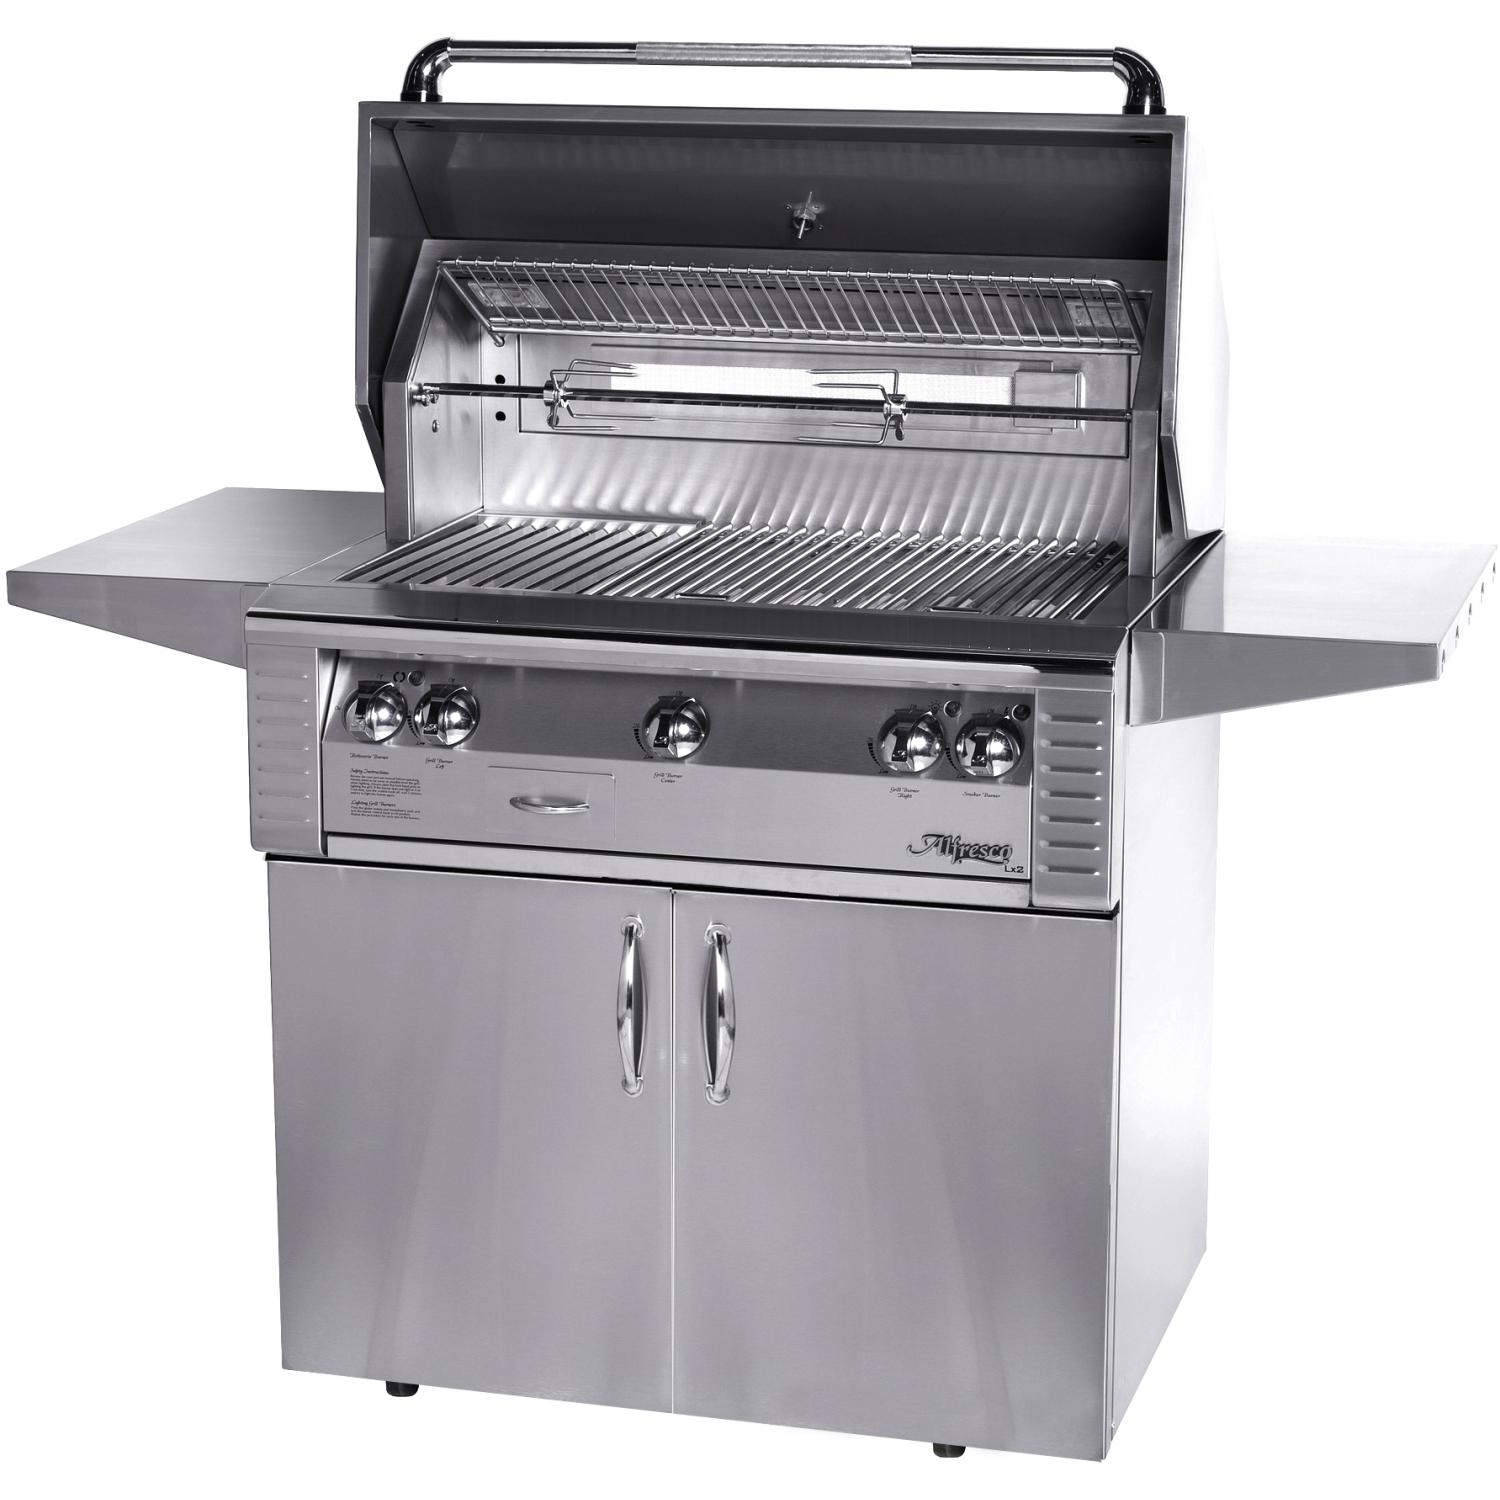 Alfresco Lx2 36-inch Natural Gas Grill On Cart With Sear Zone And Rotisserie at Sears.com